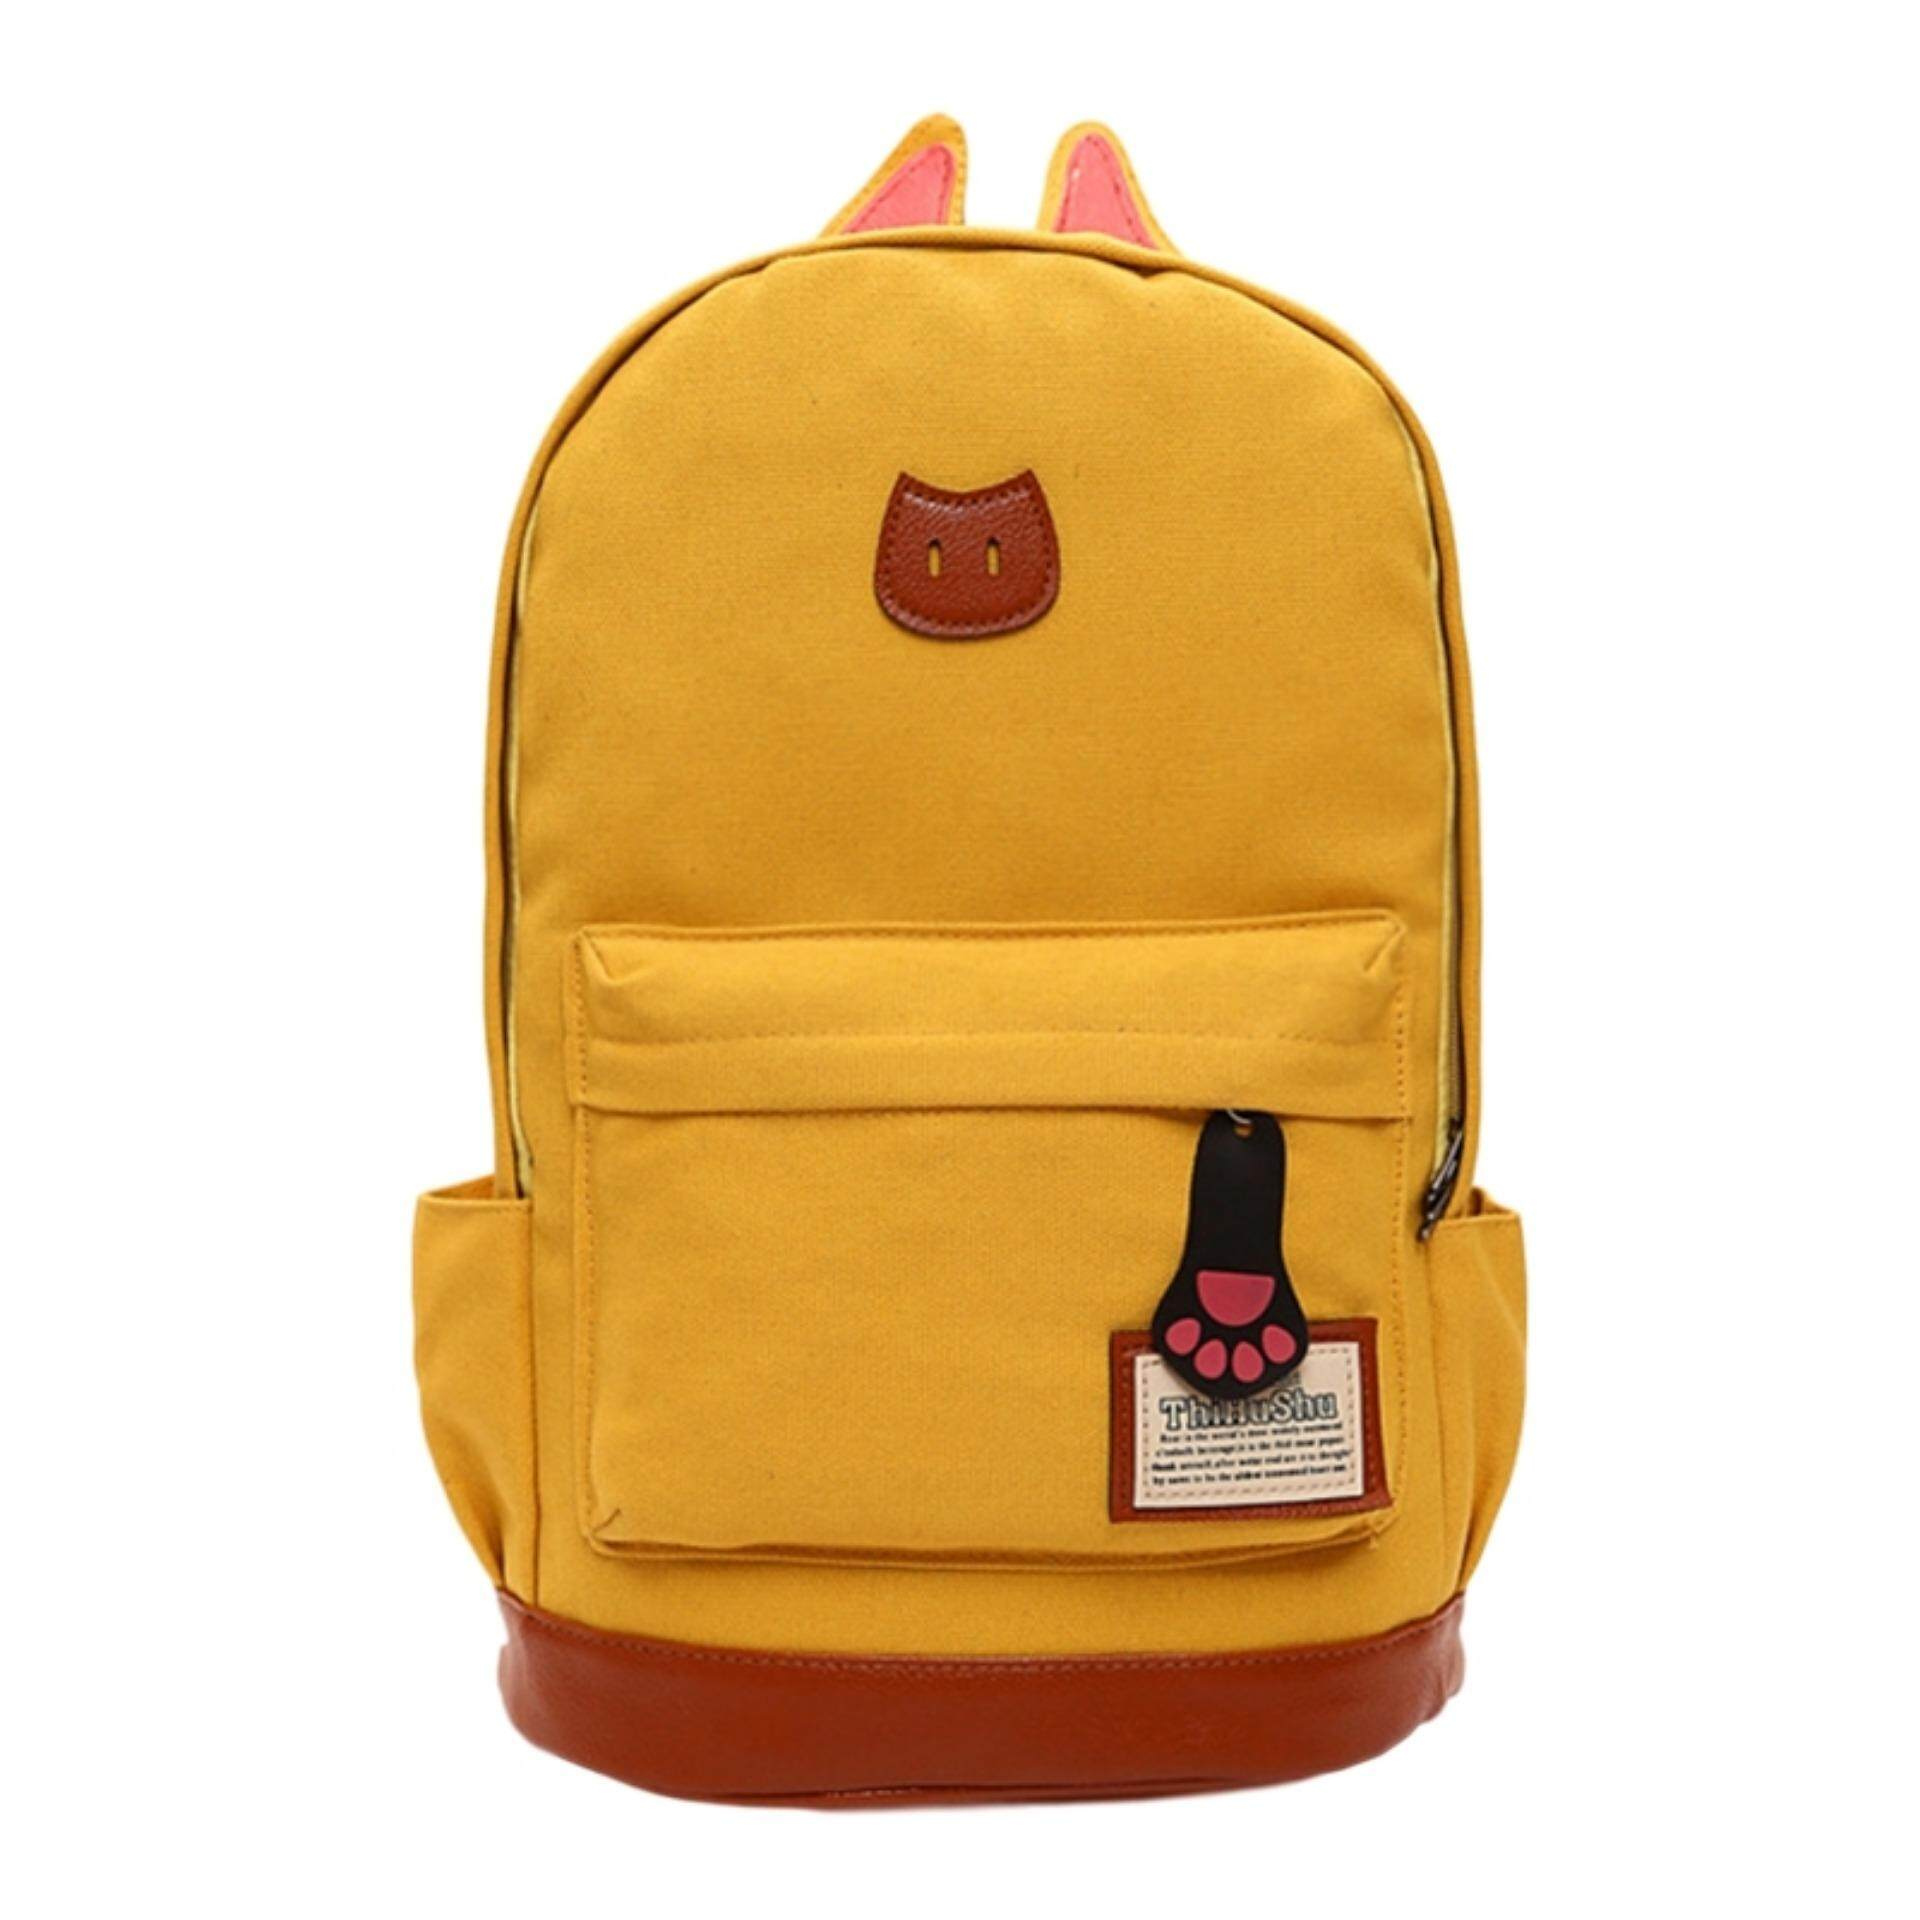 TEEMI Korean Kitten Cat Ear Canvas Backpack Casual Travel Laptop School Bag Leather Lash Tab - Yellow